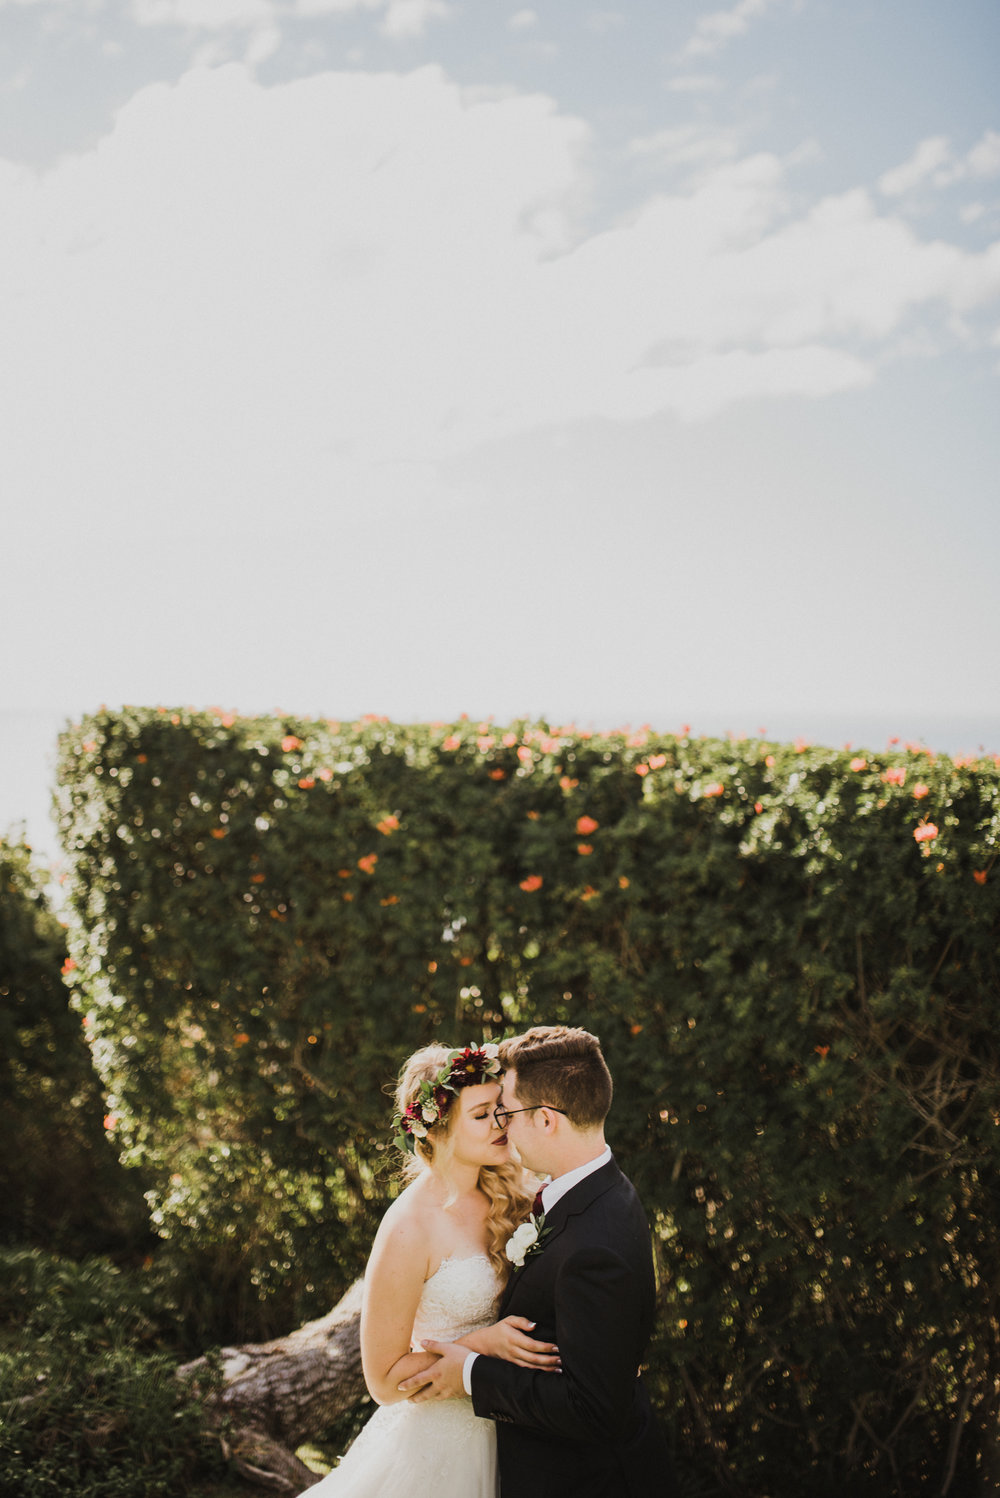 ©Isaiah + Taylor Photography - La Venta Inn Wedding, Palos Verdes Estates-11.jpg